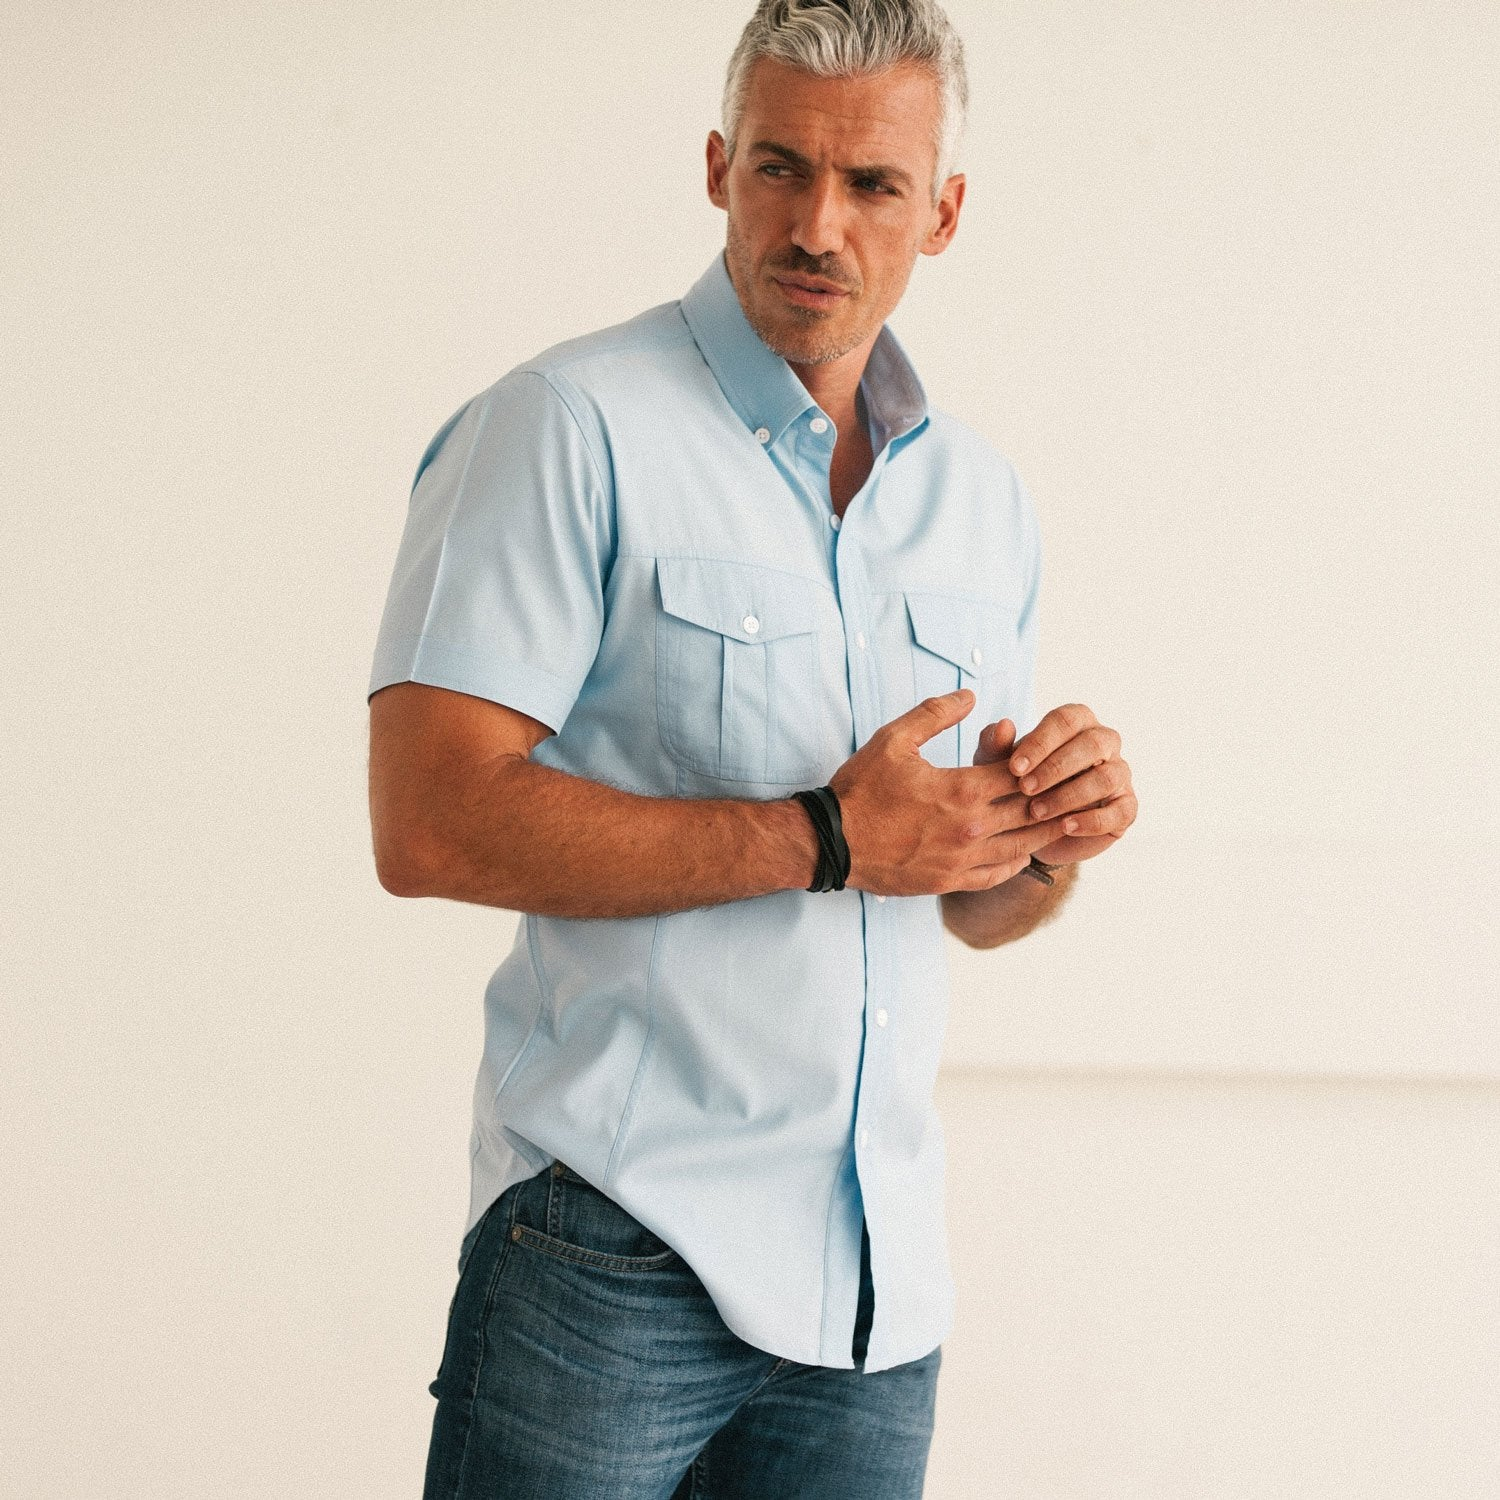 Men's Short Sleeve Casual Shirt Pulling at Front Versus Correct Fit